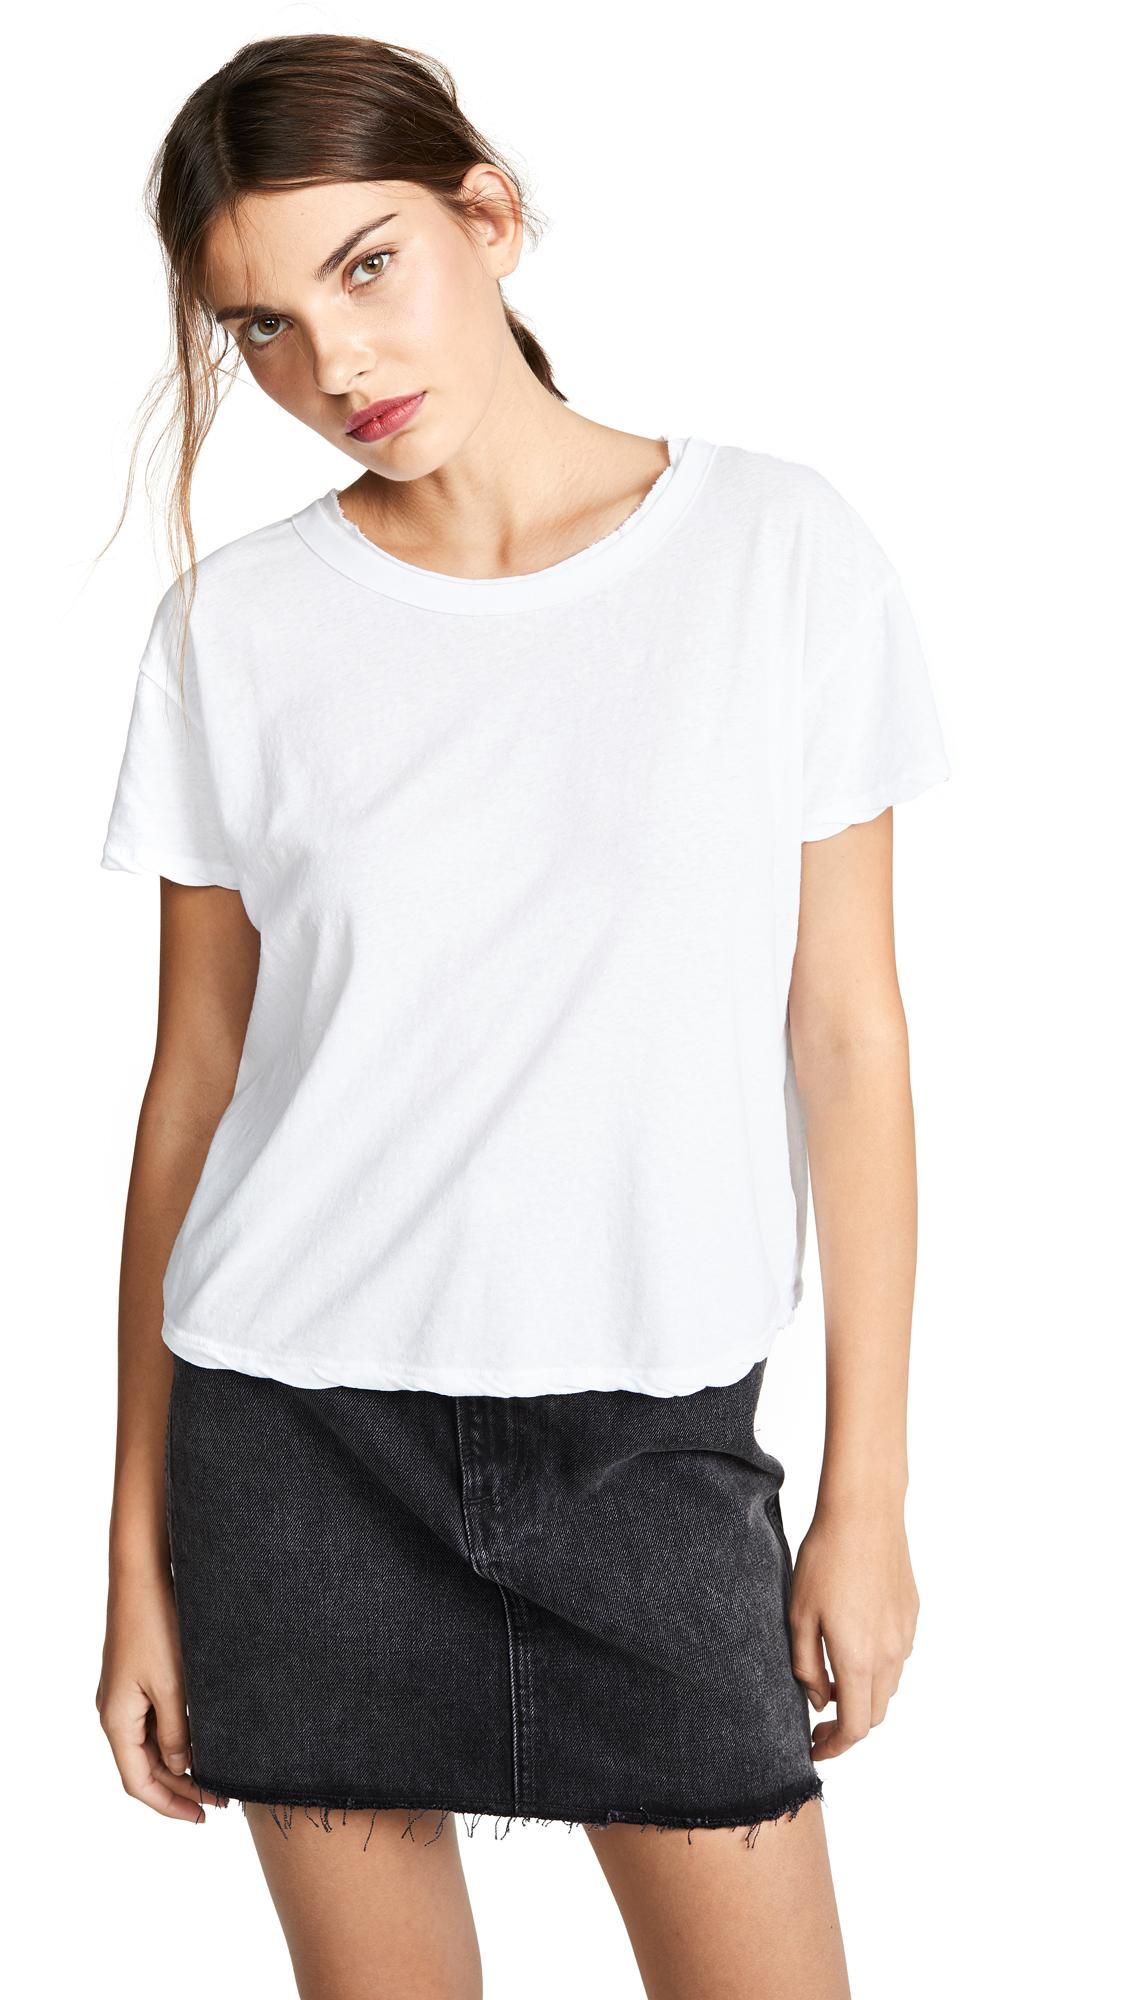 James Perse Boxy Tee In White